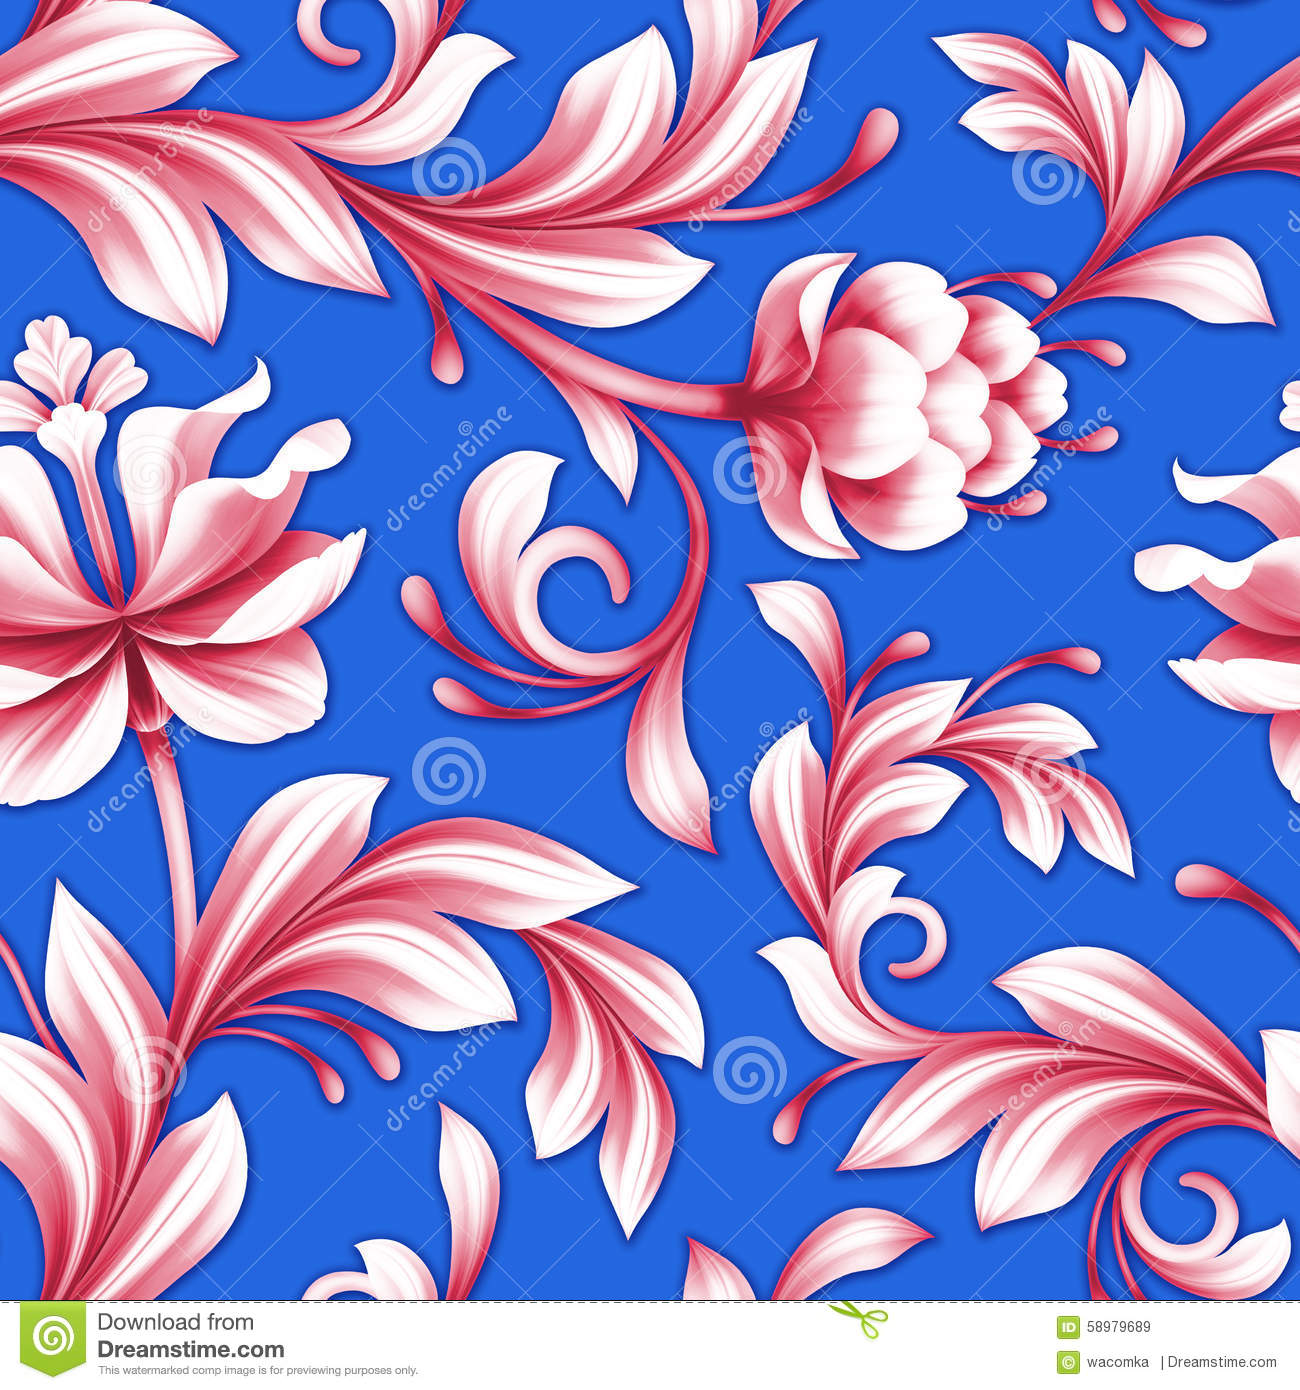 Abstract Seamless Floral Pattern Red And Royal Blue Flowers